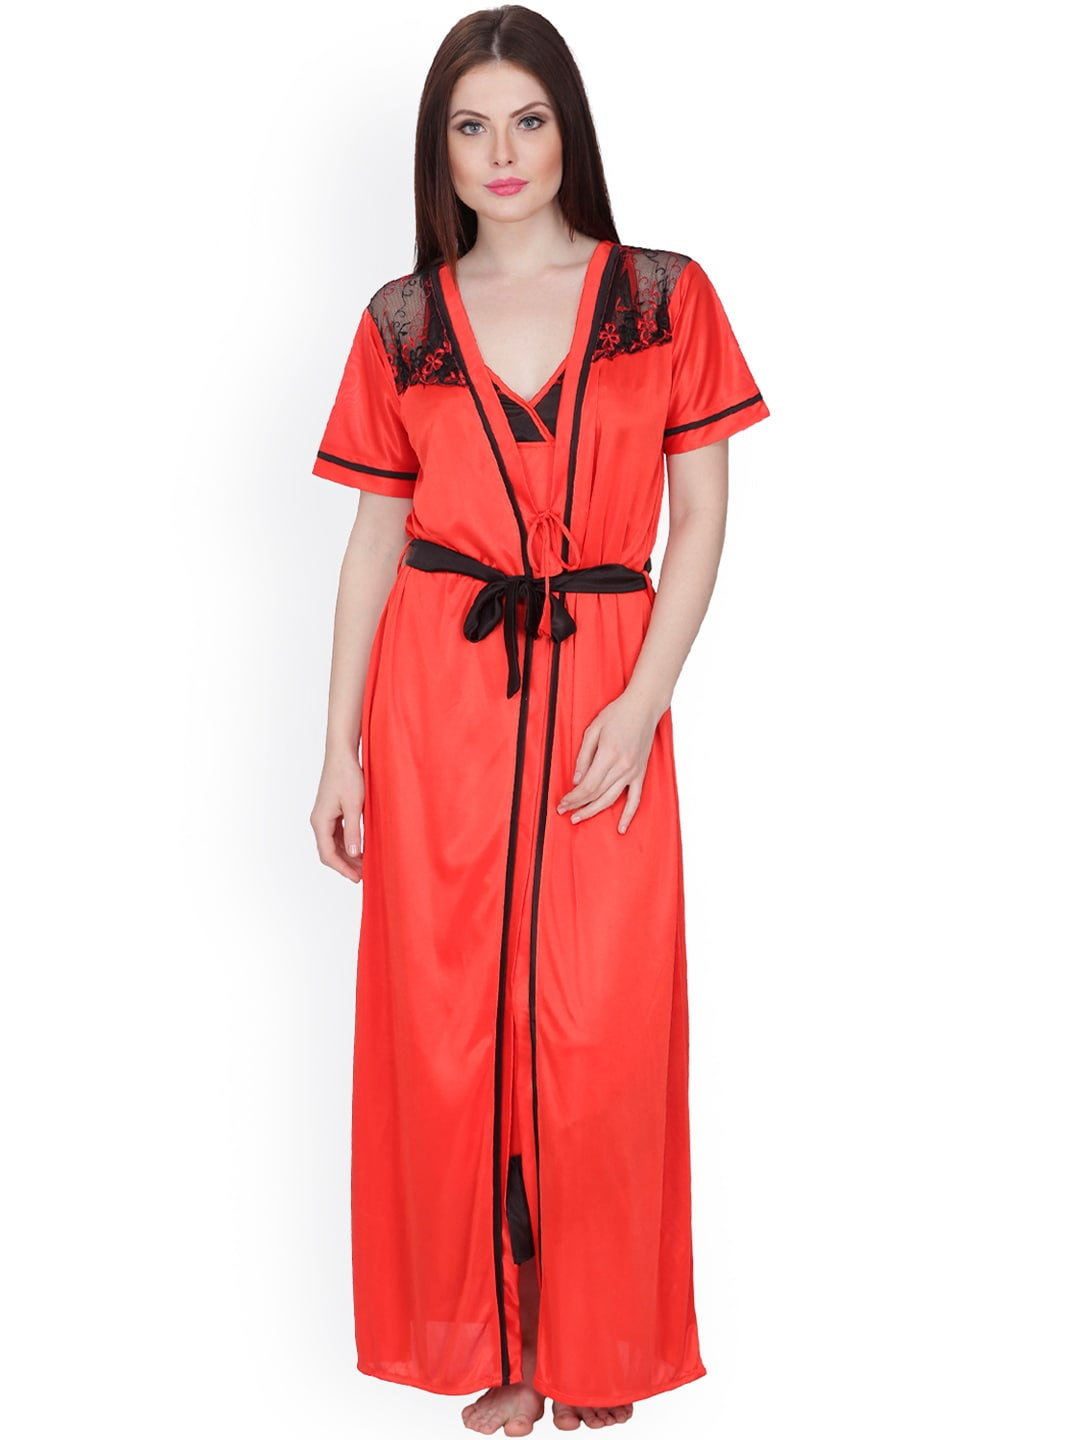 Secret Wish Red Maxi Nightdress with Robe HC-173